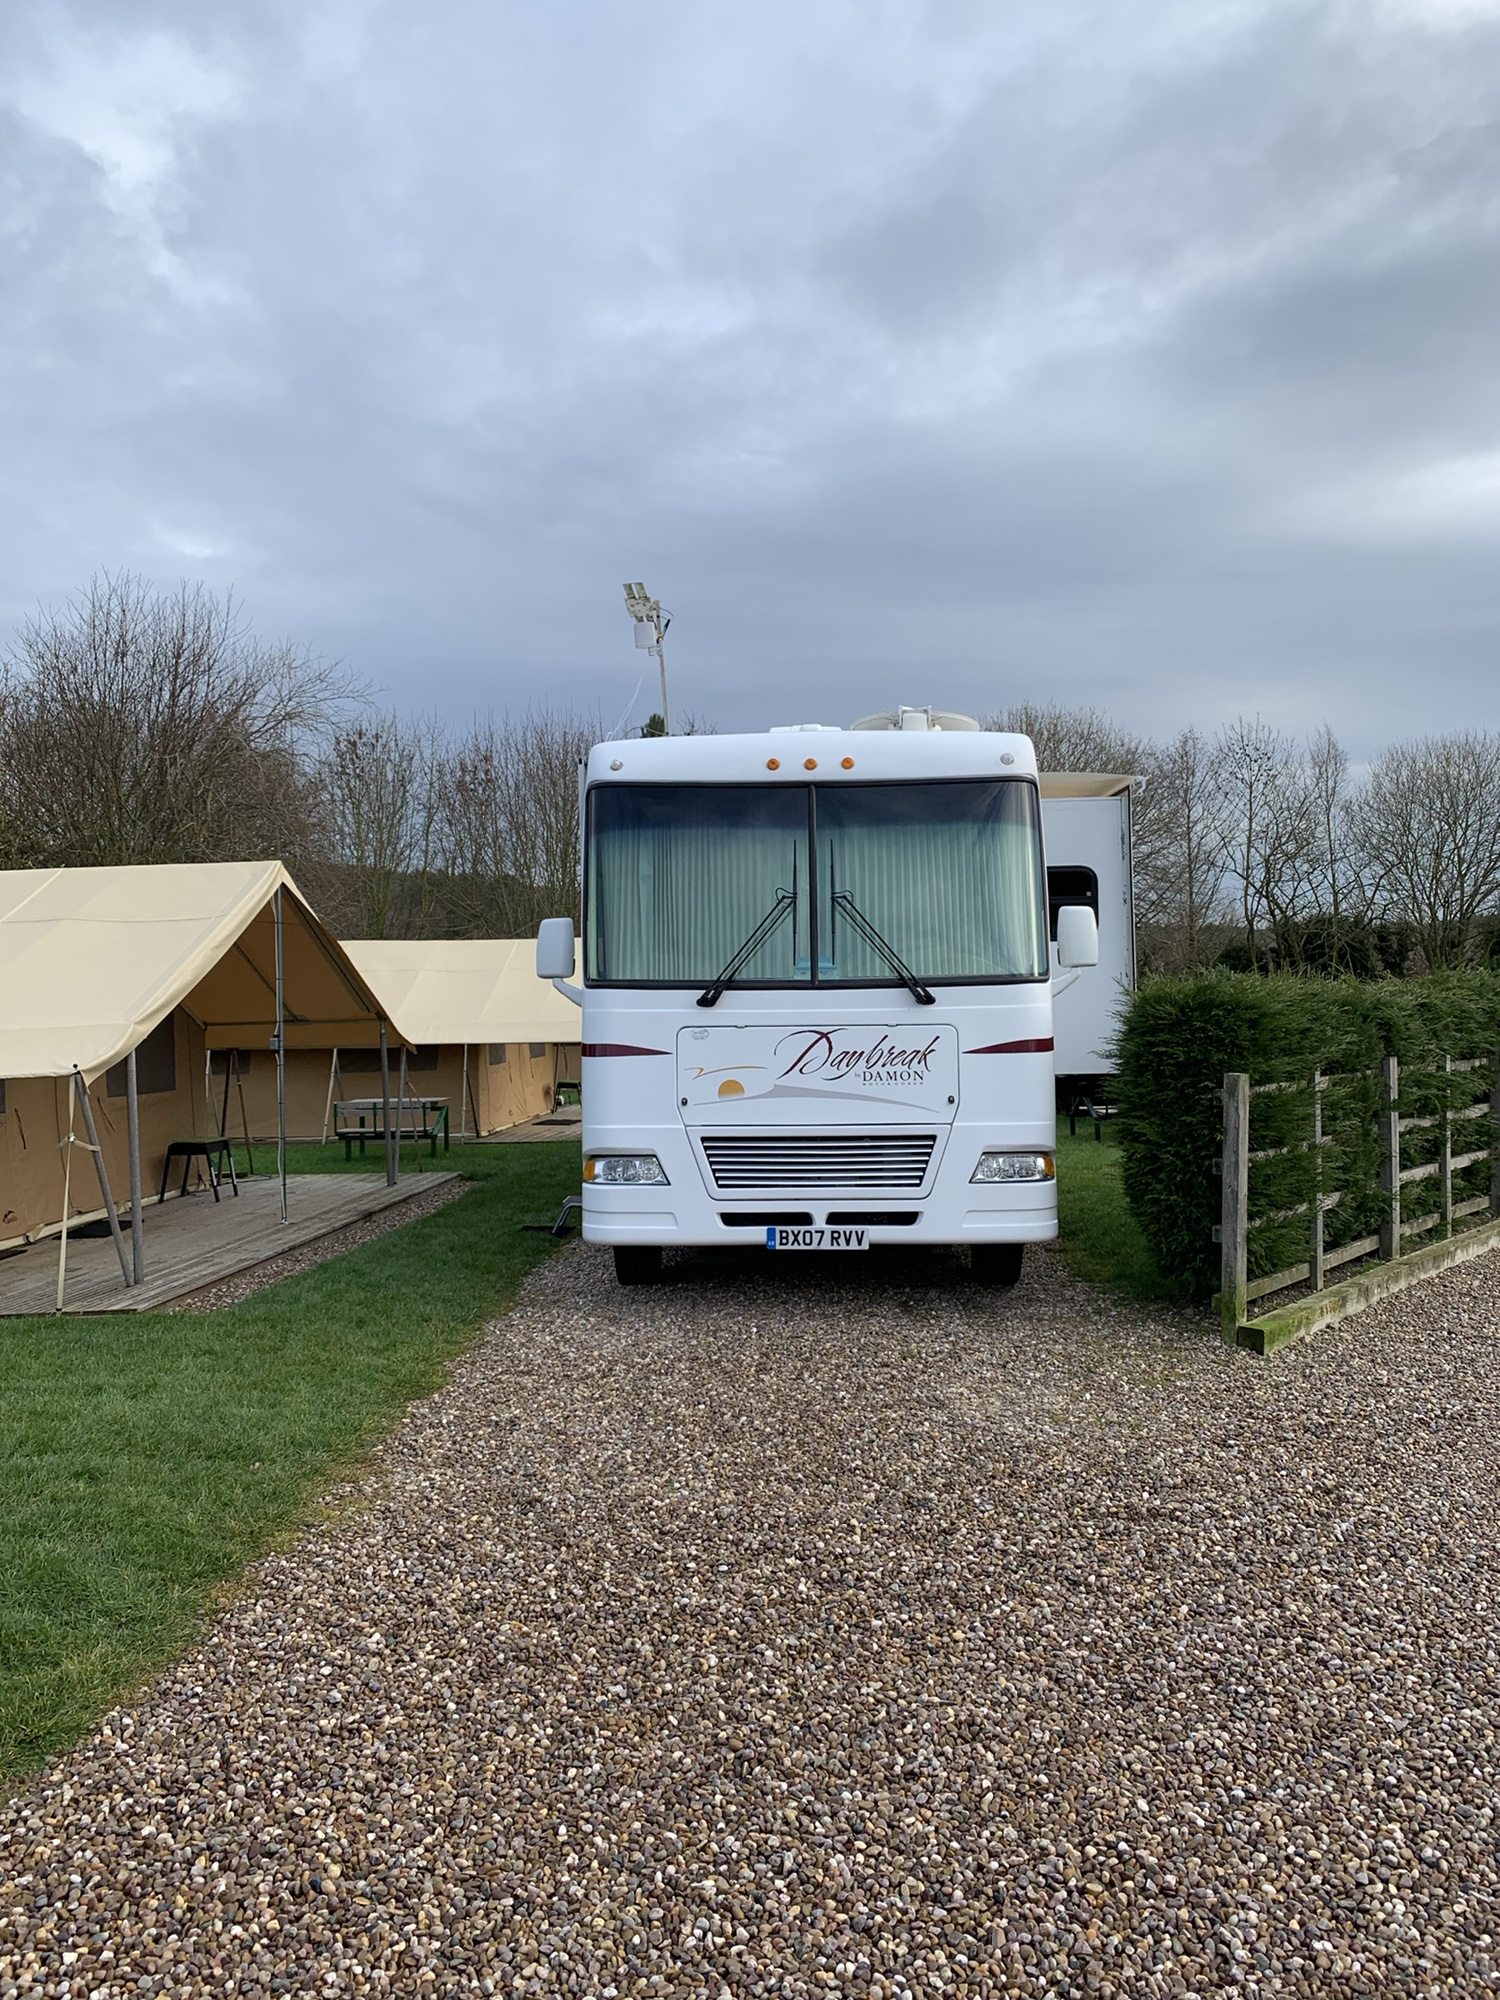 Review of Teversal Camping and Caravanning Club Site